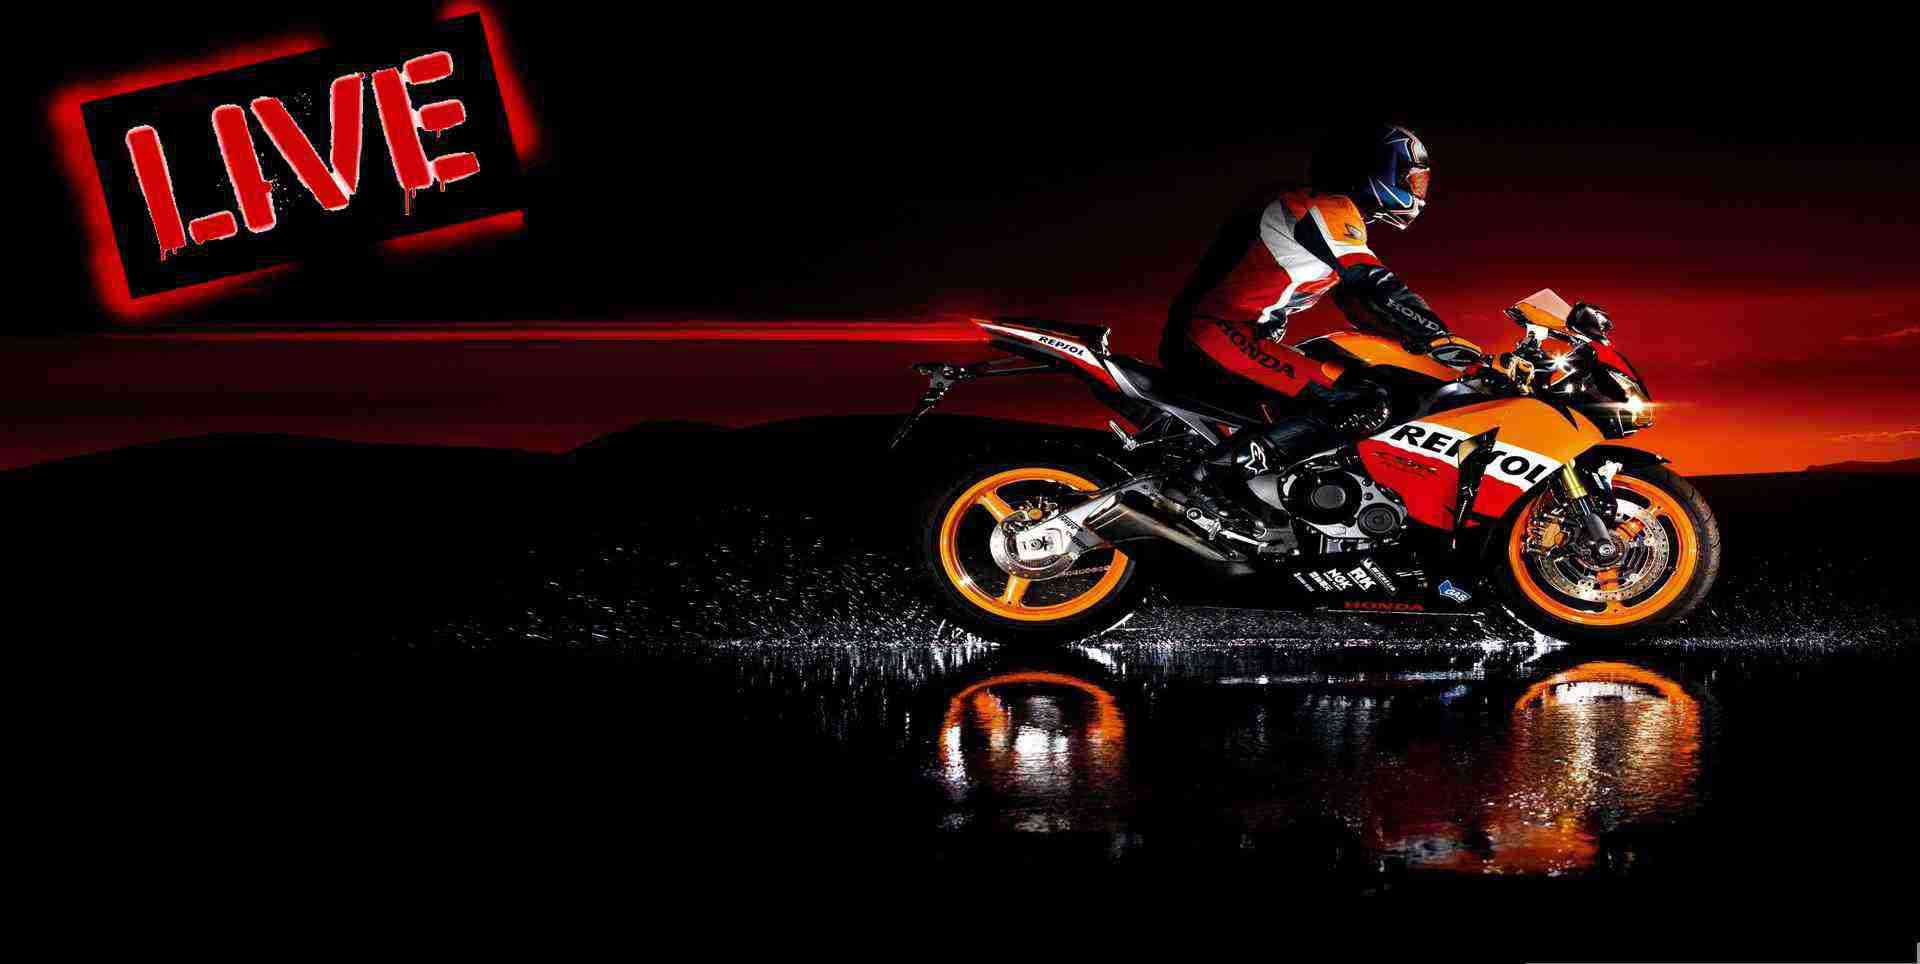 Live Shell Malaysia Motorcycle Grand Prix 2016 Online